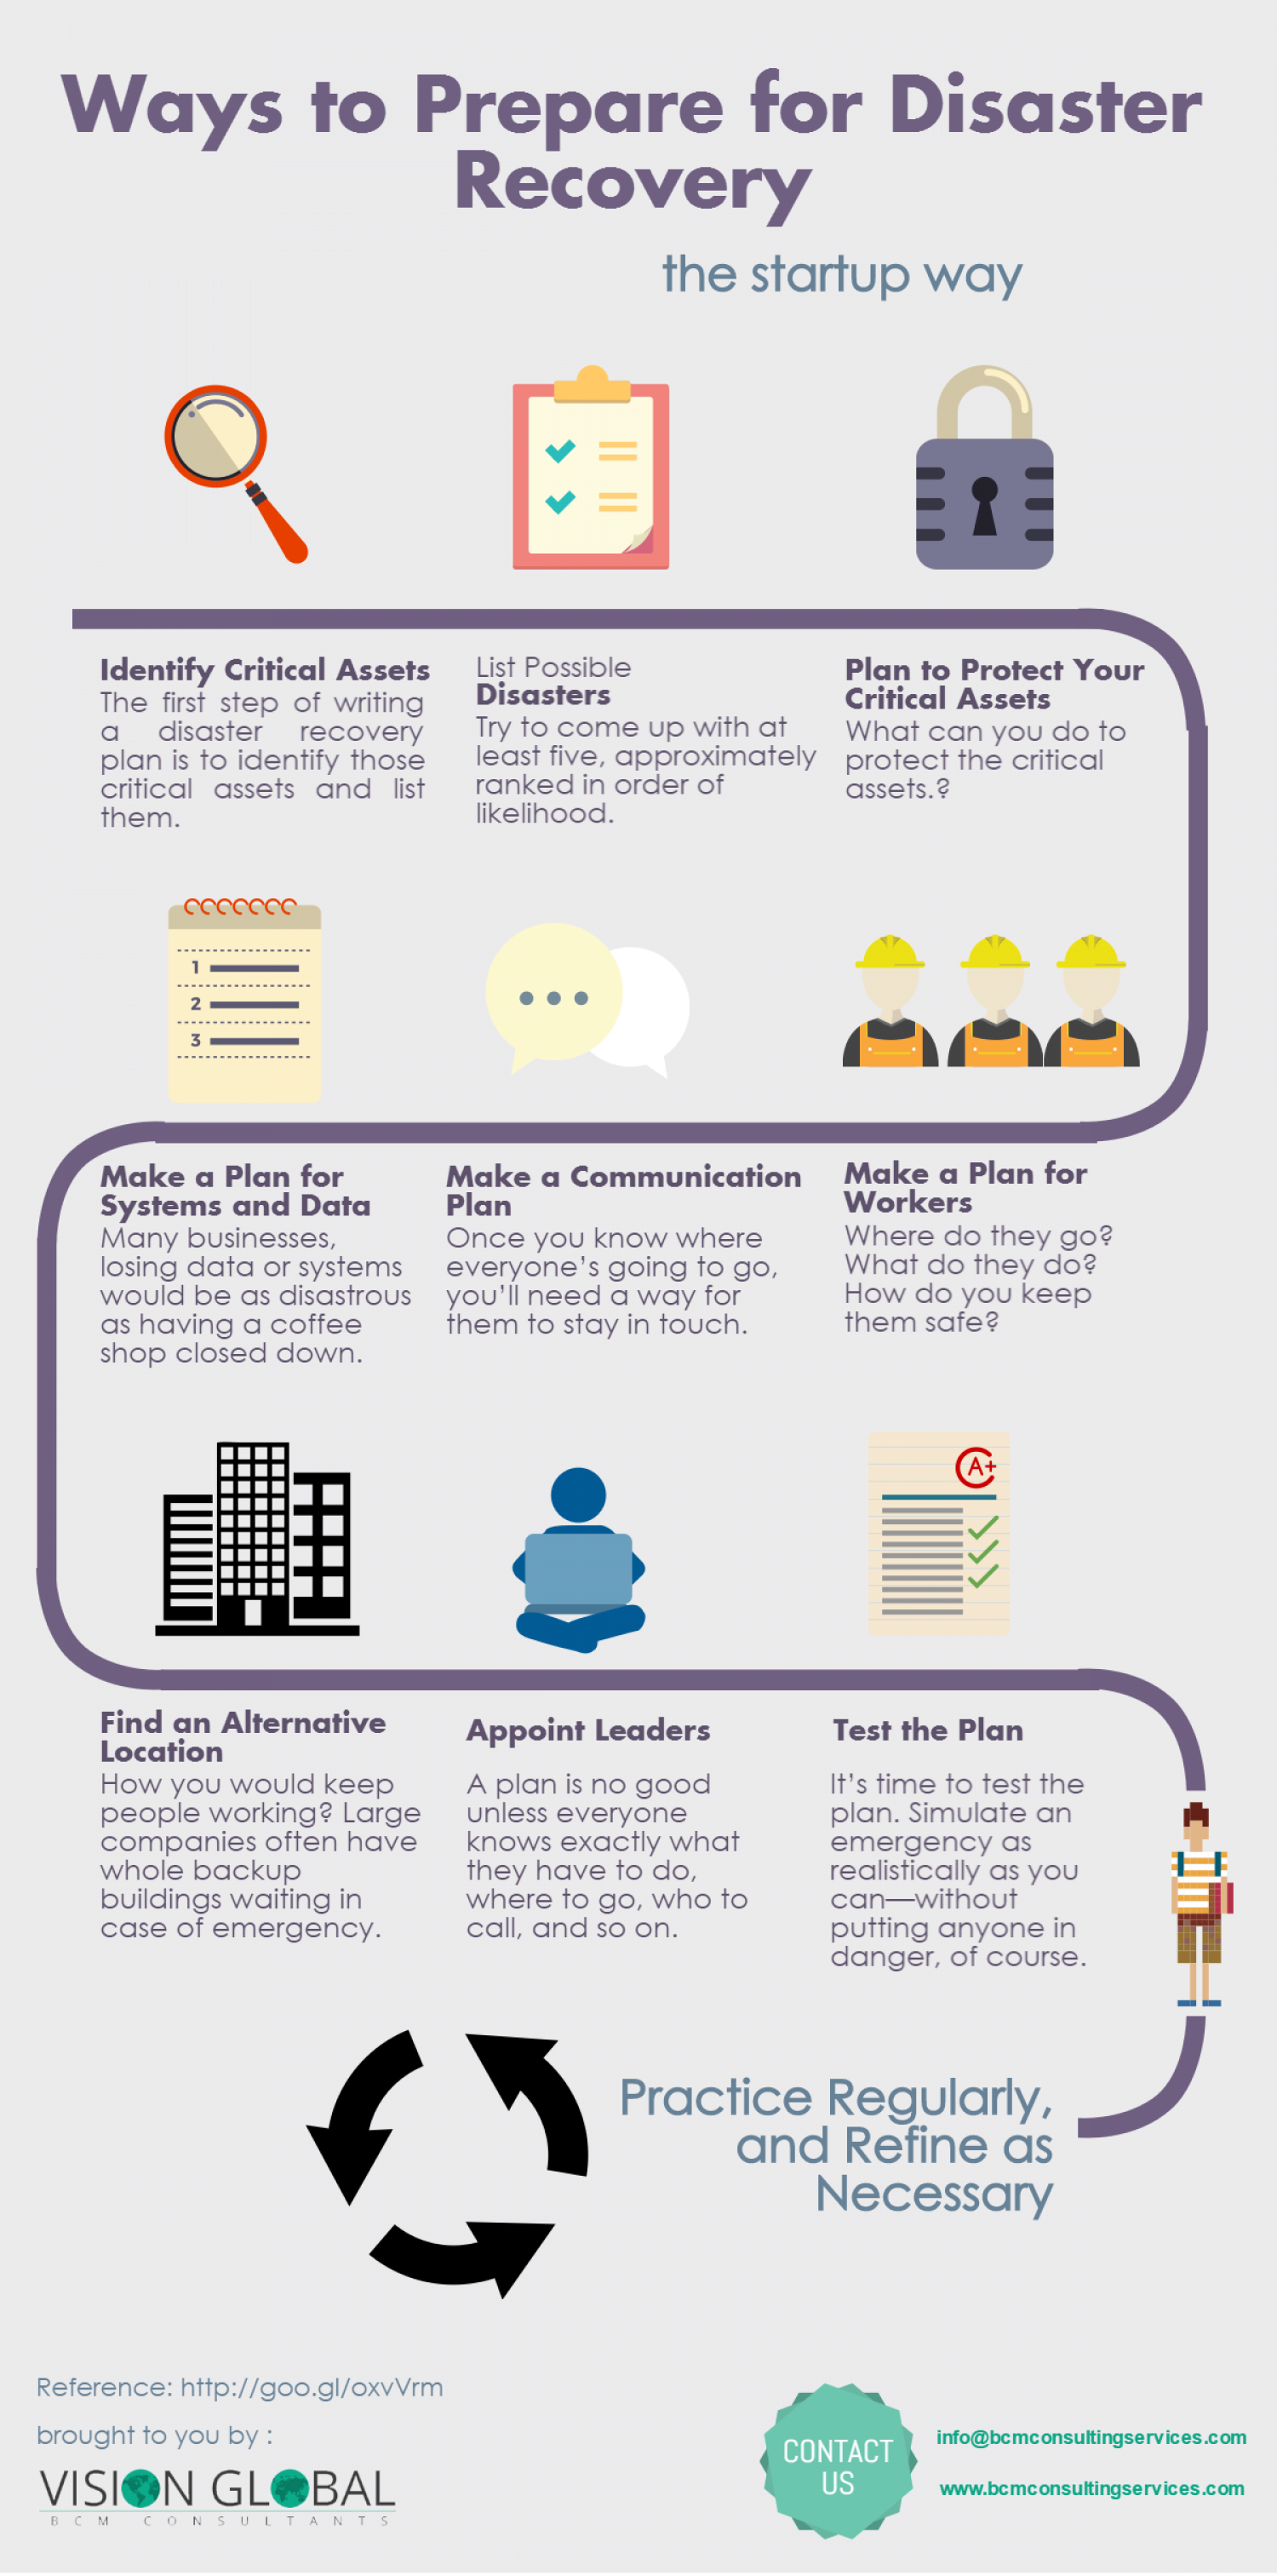 WAYS TO PREPARE FOR A DISASTER RECOVERY Infographic